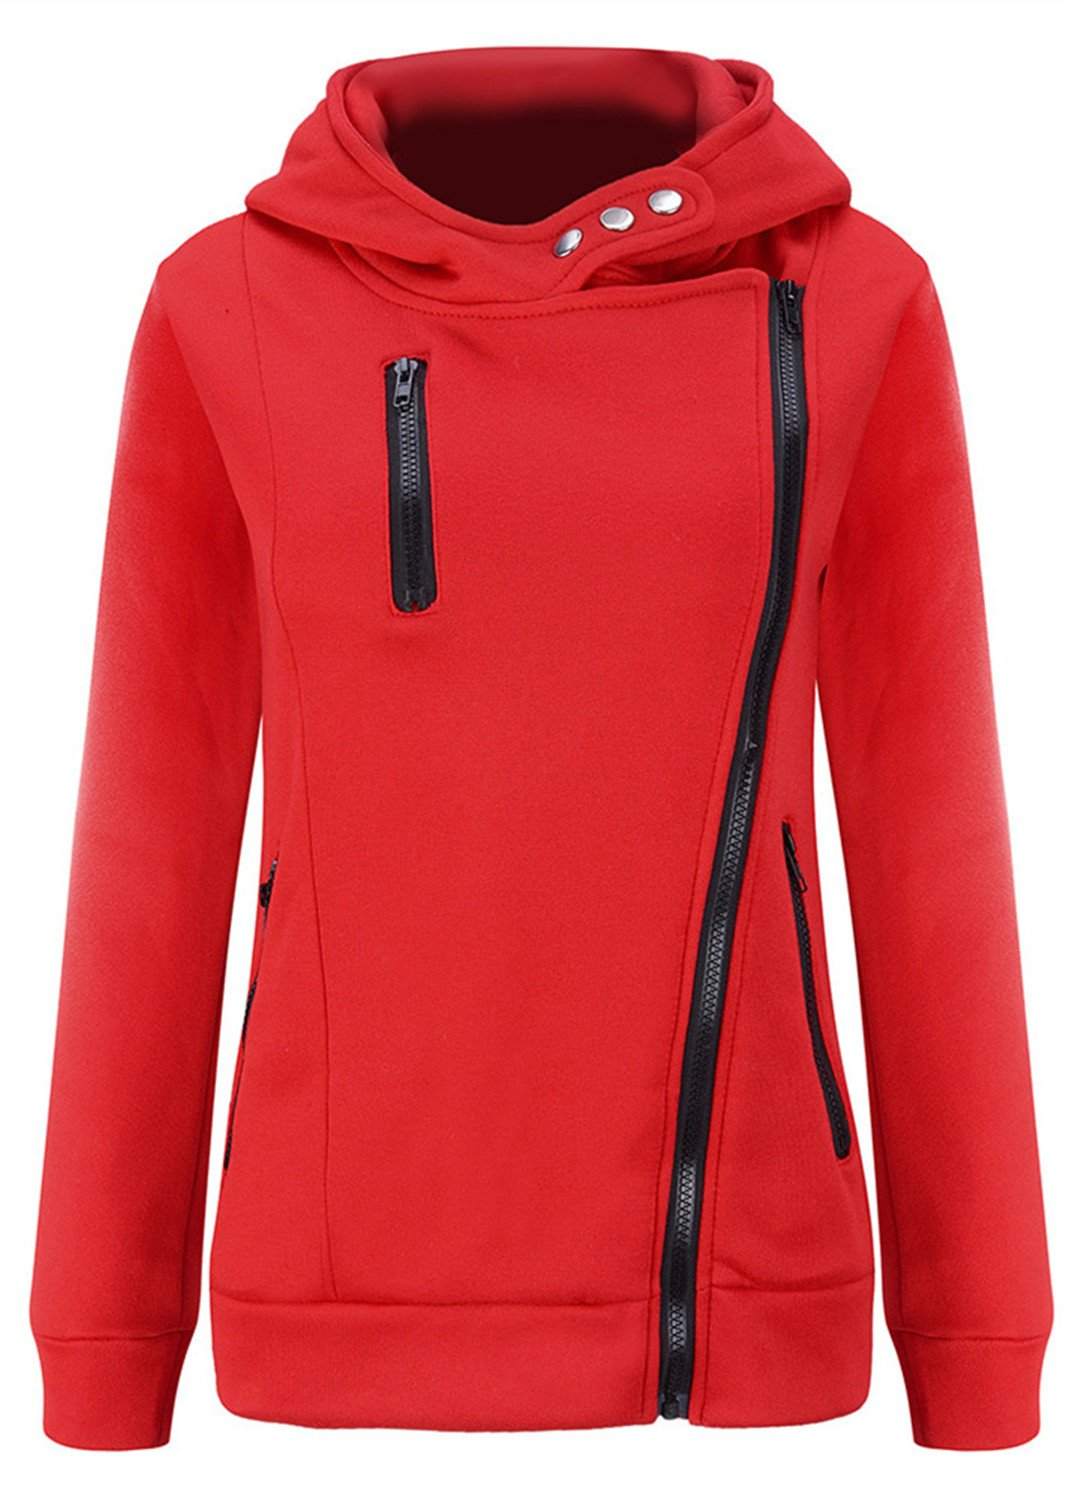 Arctic Cubic Asymmetric Asymmetrical Thick Warm Full Lined Hooded Hood Hoodie Cotton Sweatshirt Top Button Side Zip Closure Red S